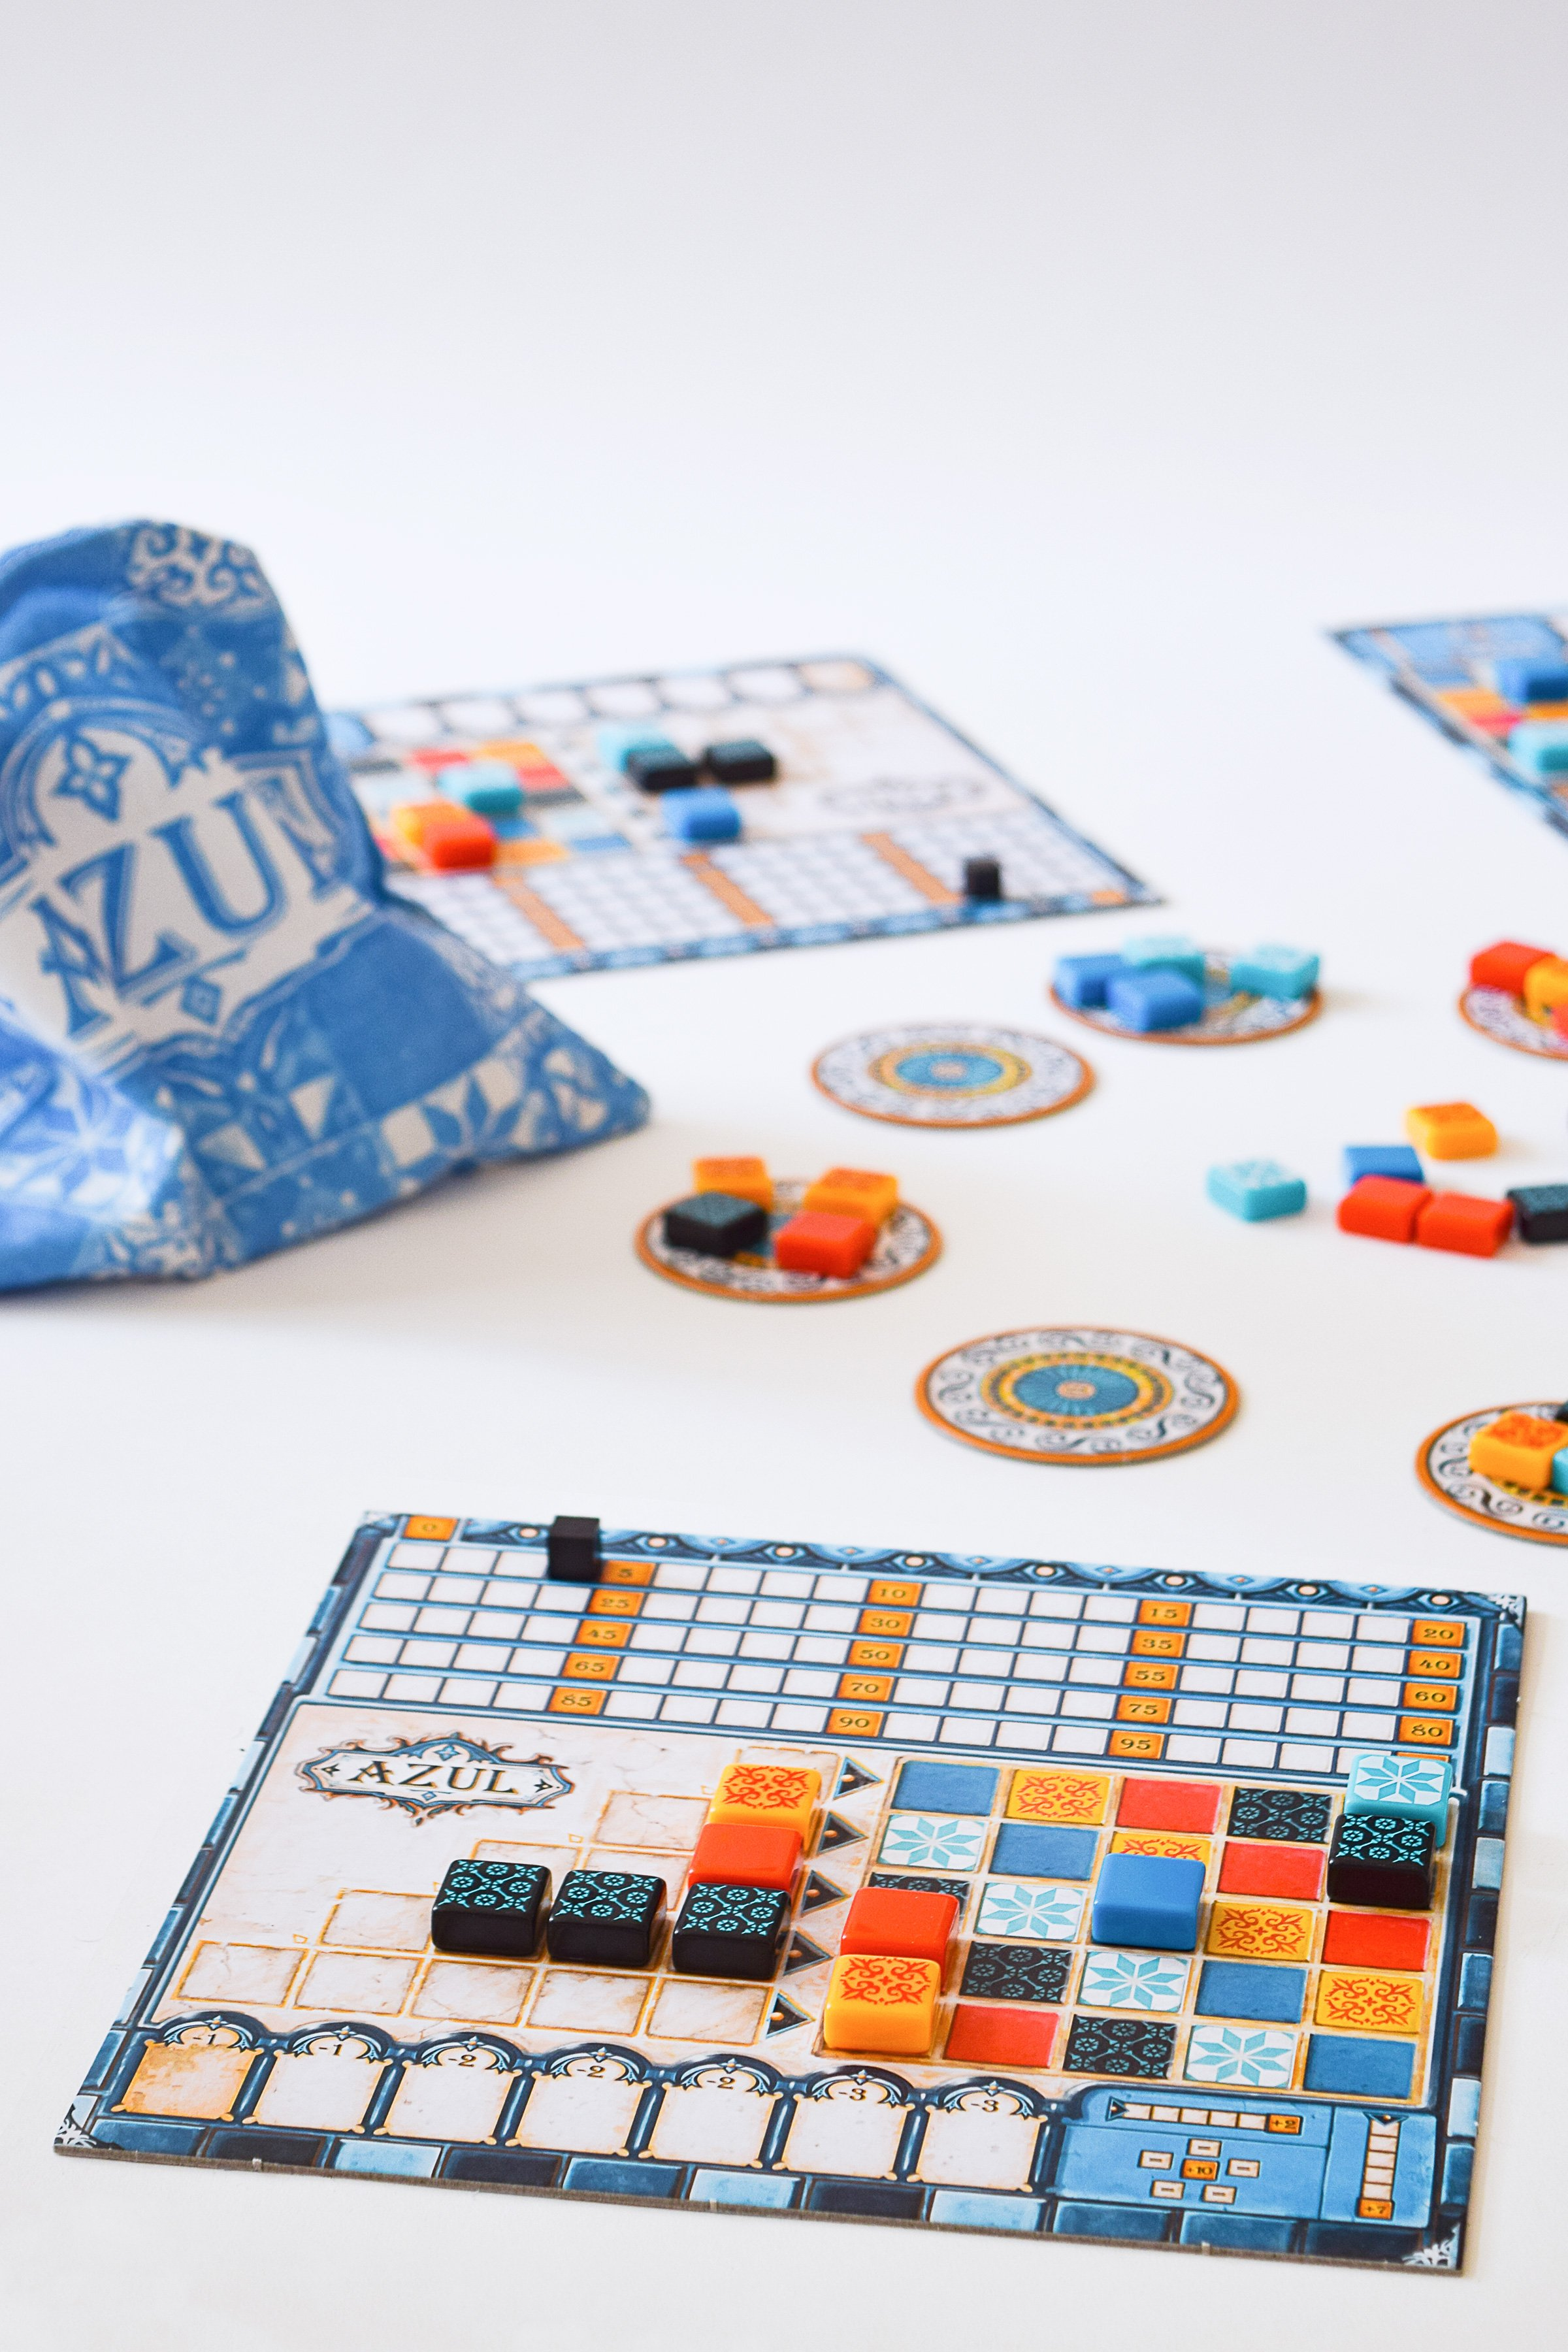 10 Board Games To Play With Friends & Family | Azul | Little House On The Corner